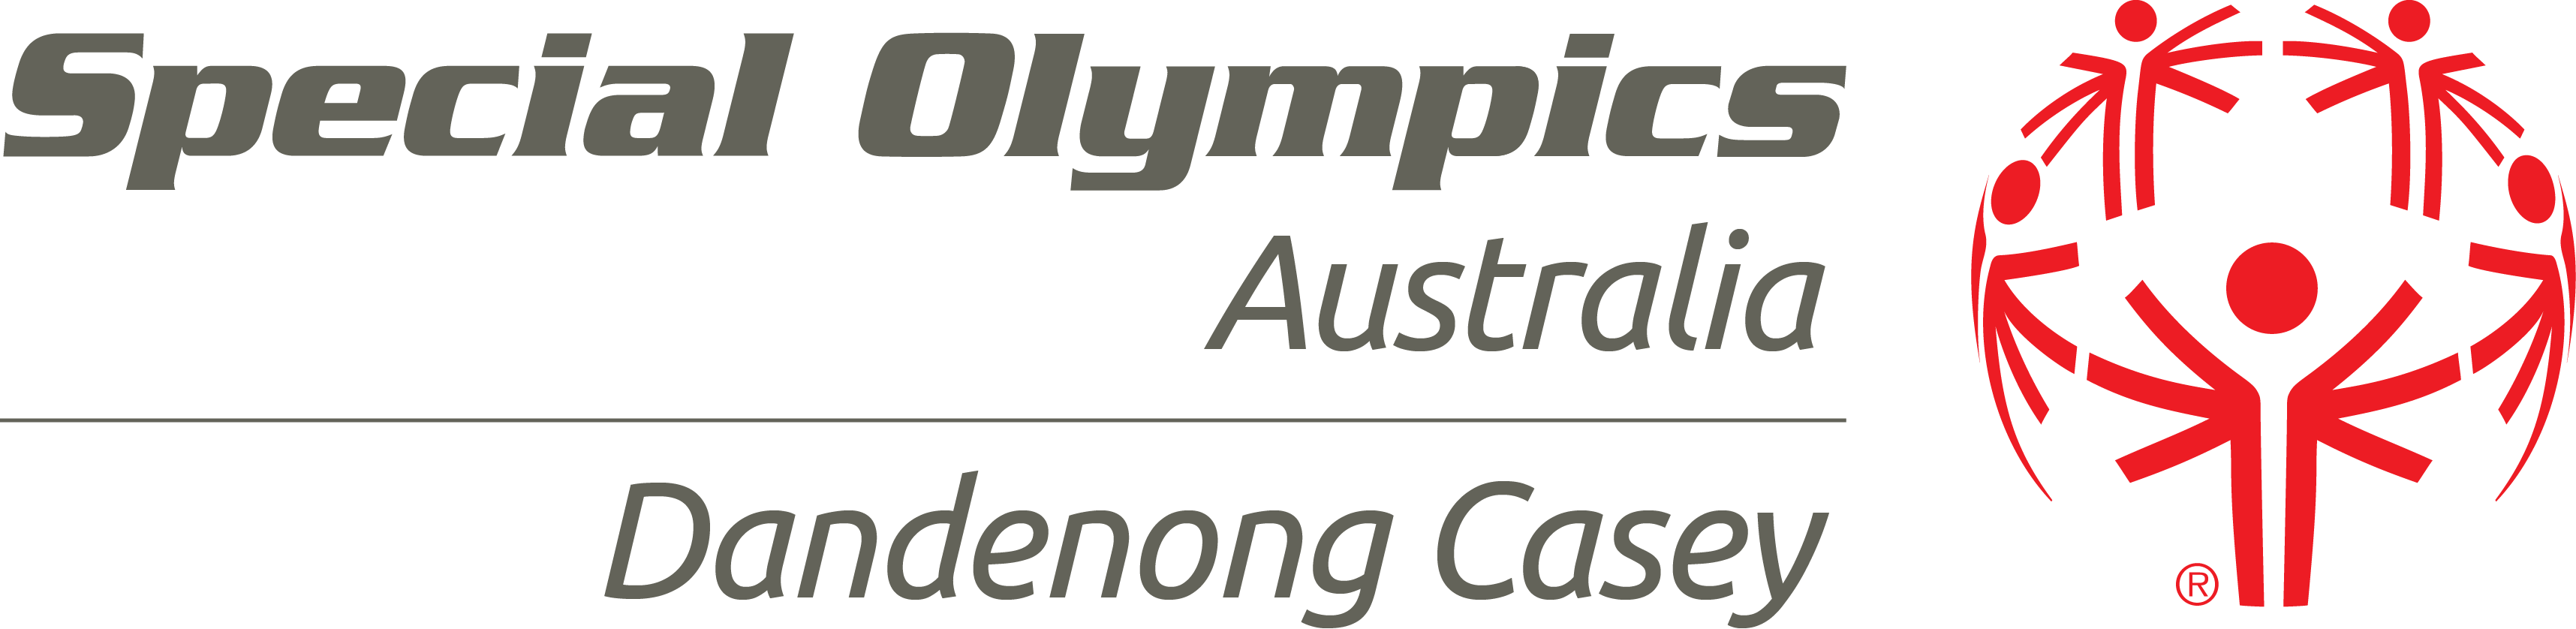 Special Olympics Dandenong Casey